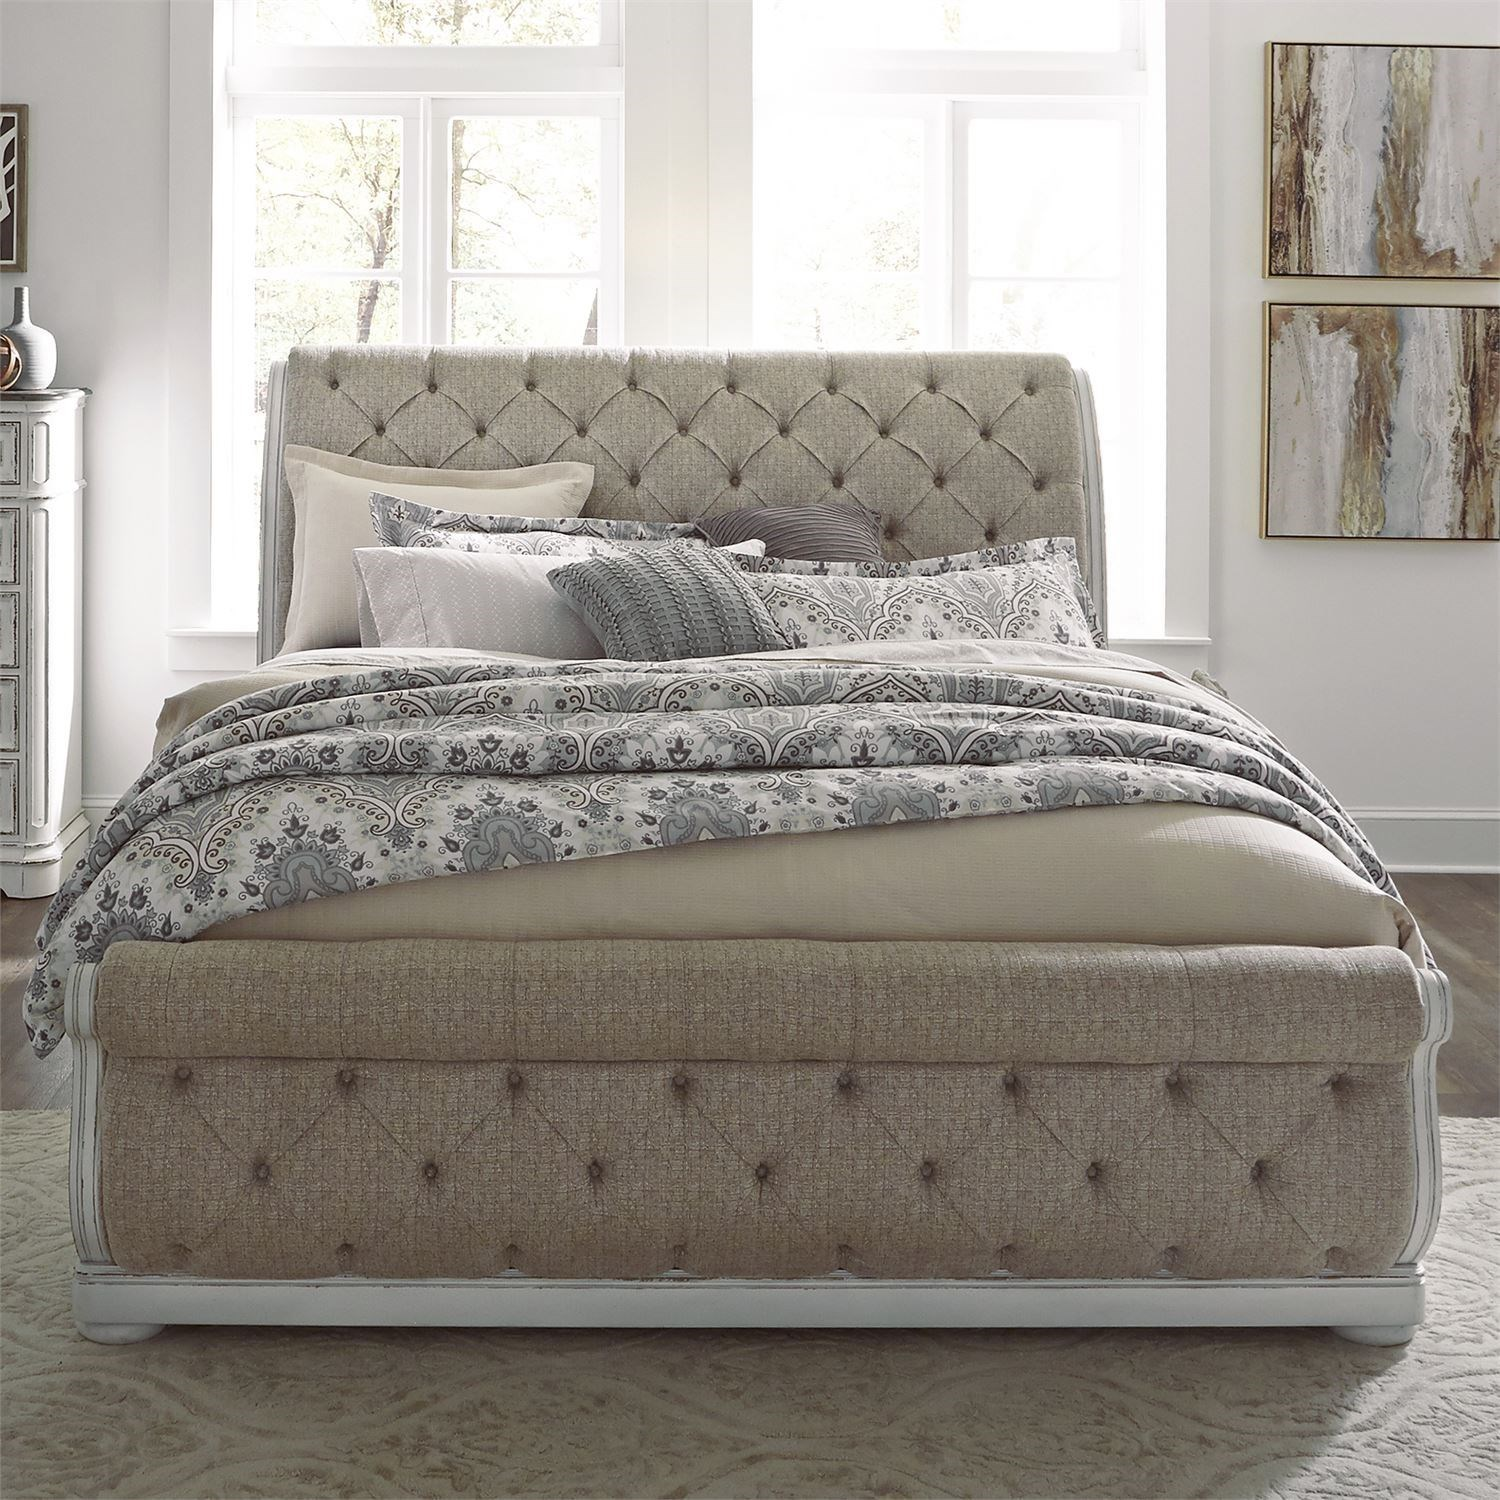 Liberty Furniture Magnolia Manor Traditional Queen Upholstered Sleigh Bed With Button Tufted Head And Footboard Royal Furniture Sleigh Beds